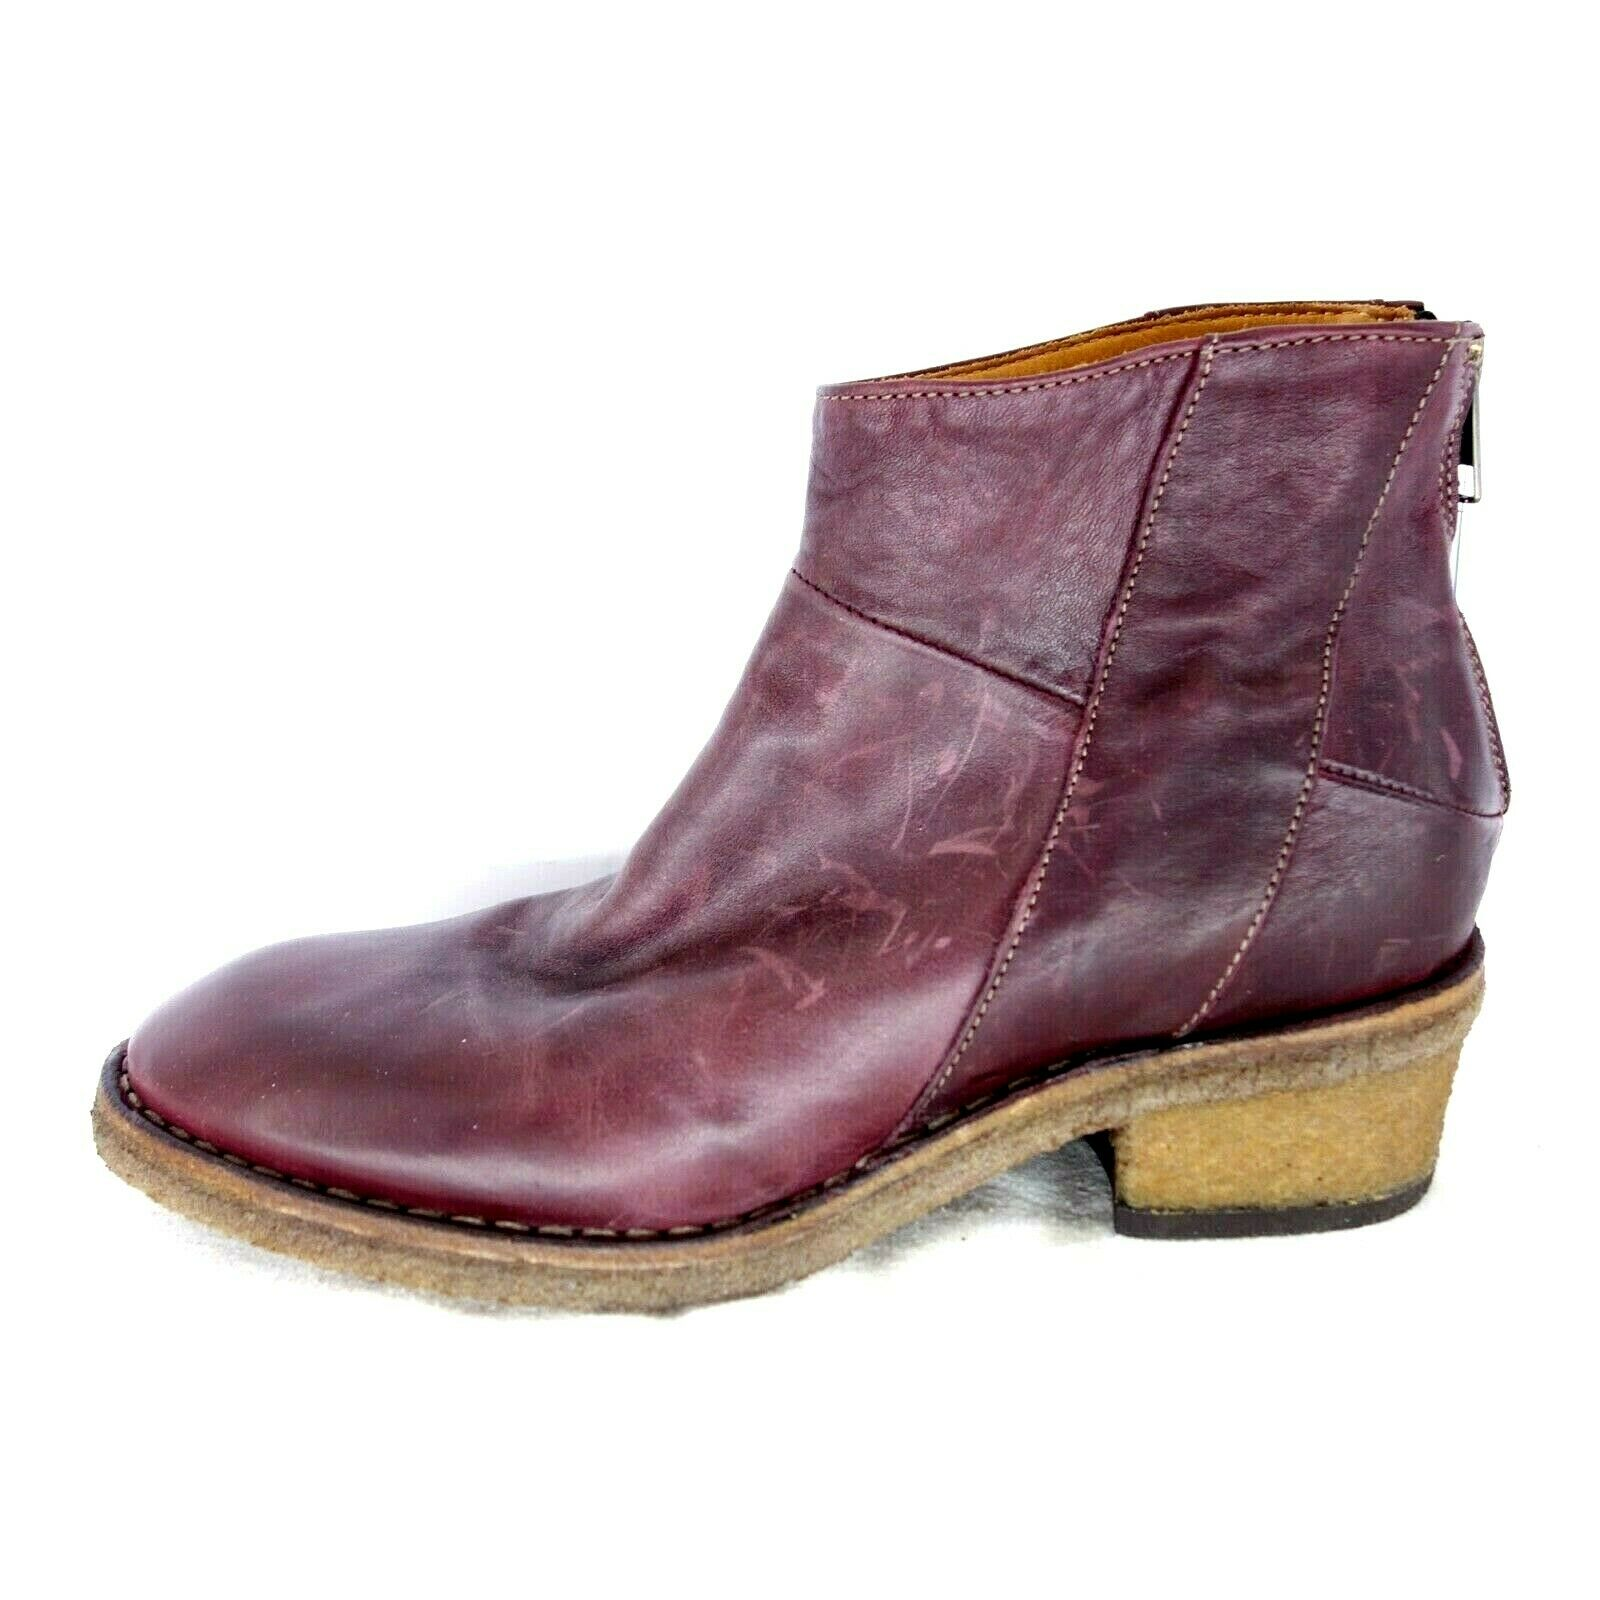 Uit ou Meda Femmes Chaussures Bottines Bottes 0994 38 39 Cuir Rond Np 239